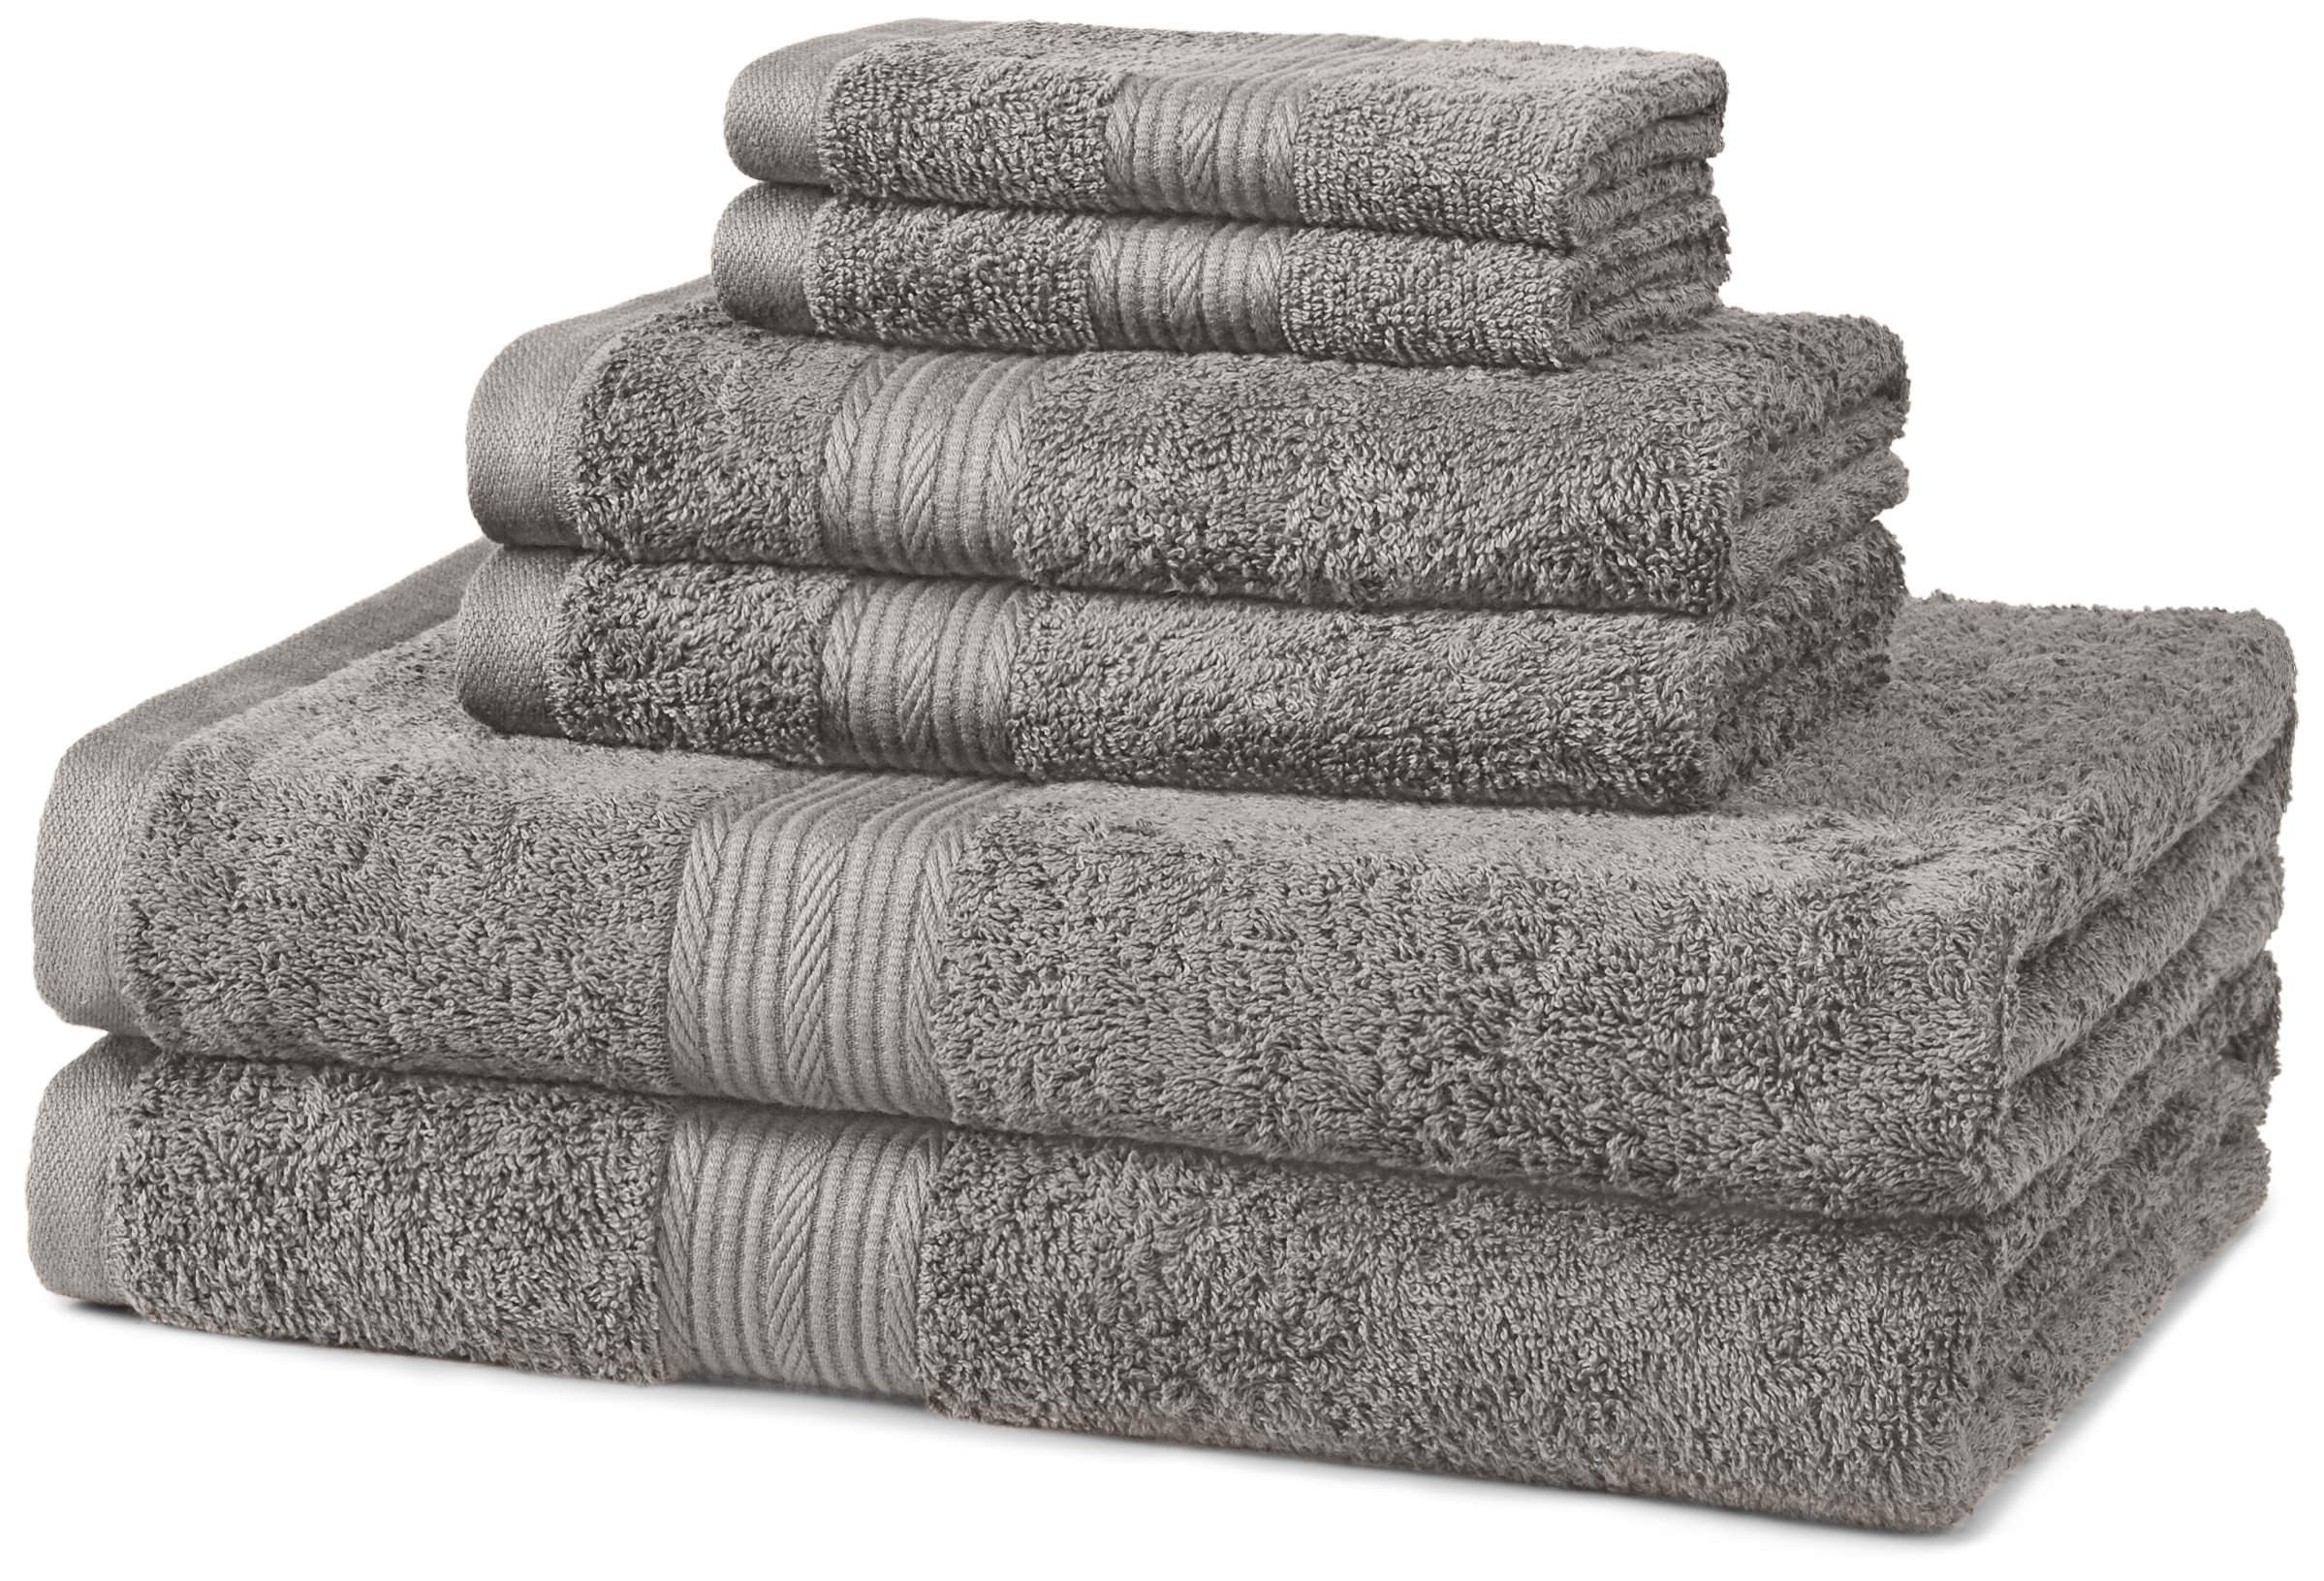 AmazonBasics Fade-Resistant 6-Piece Cotton Towel Set, Grey